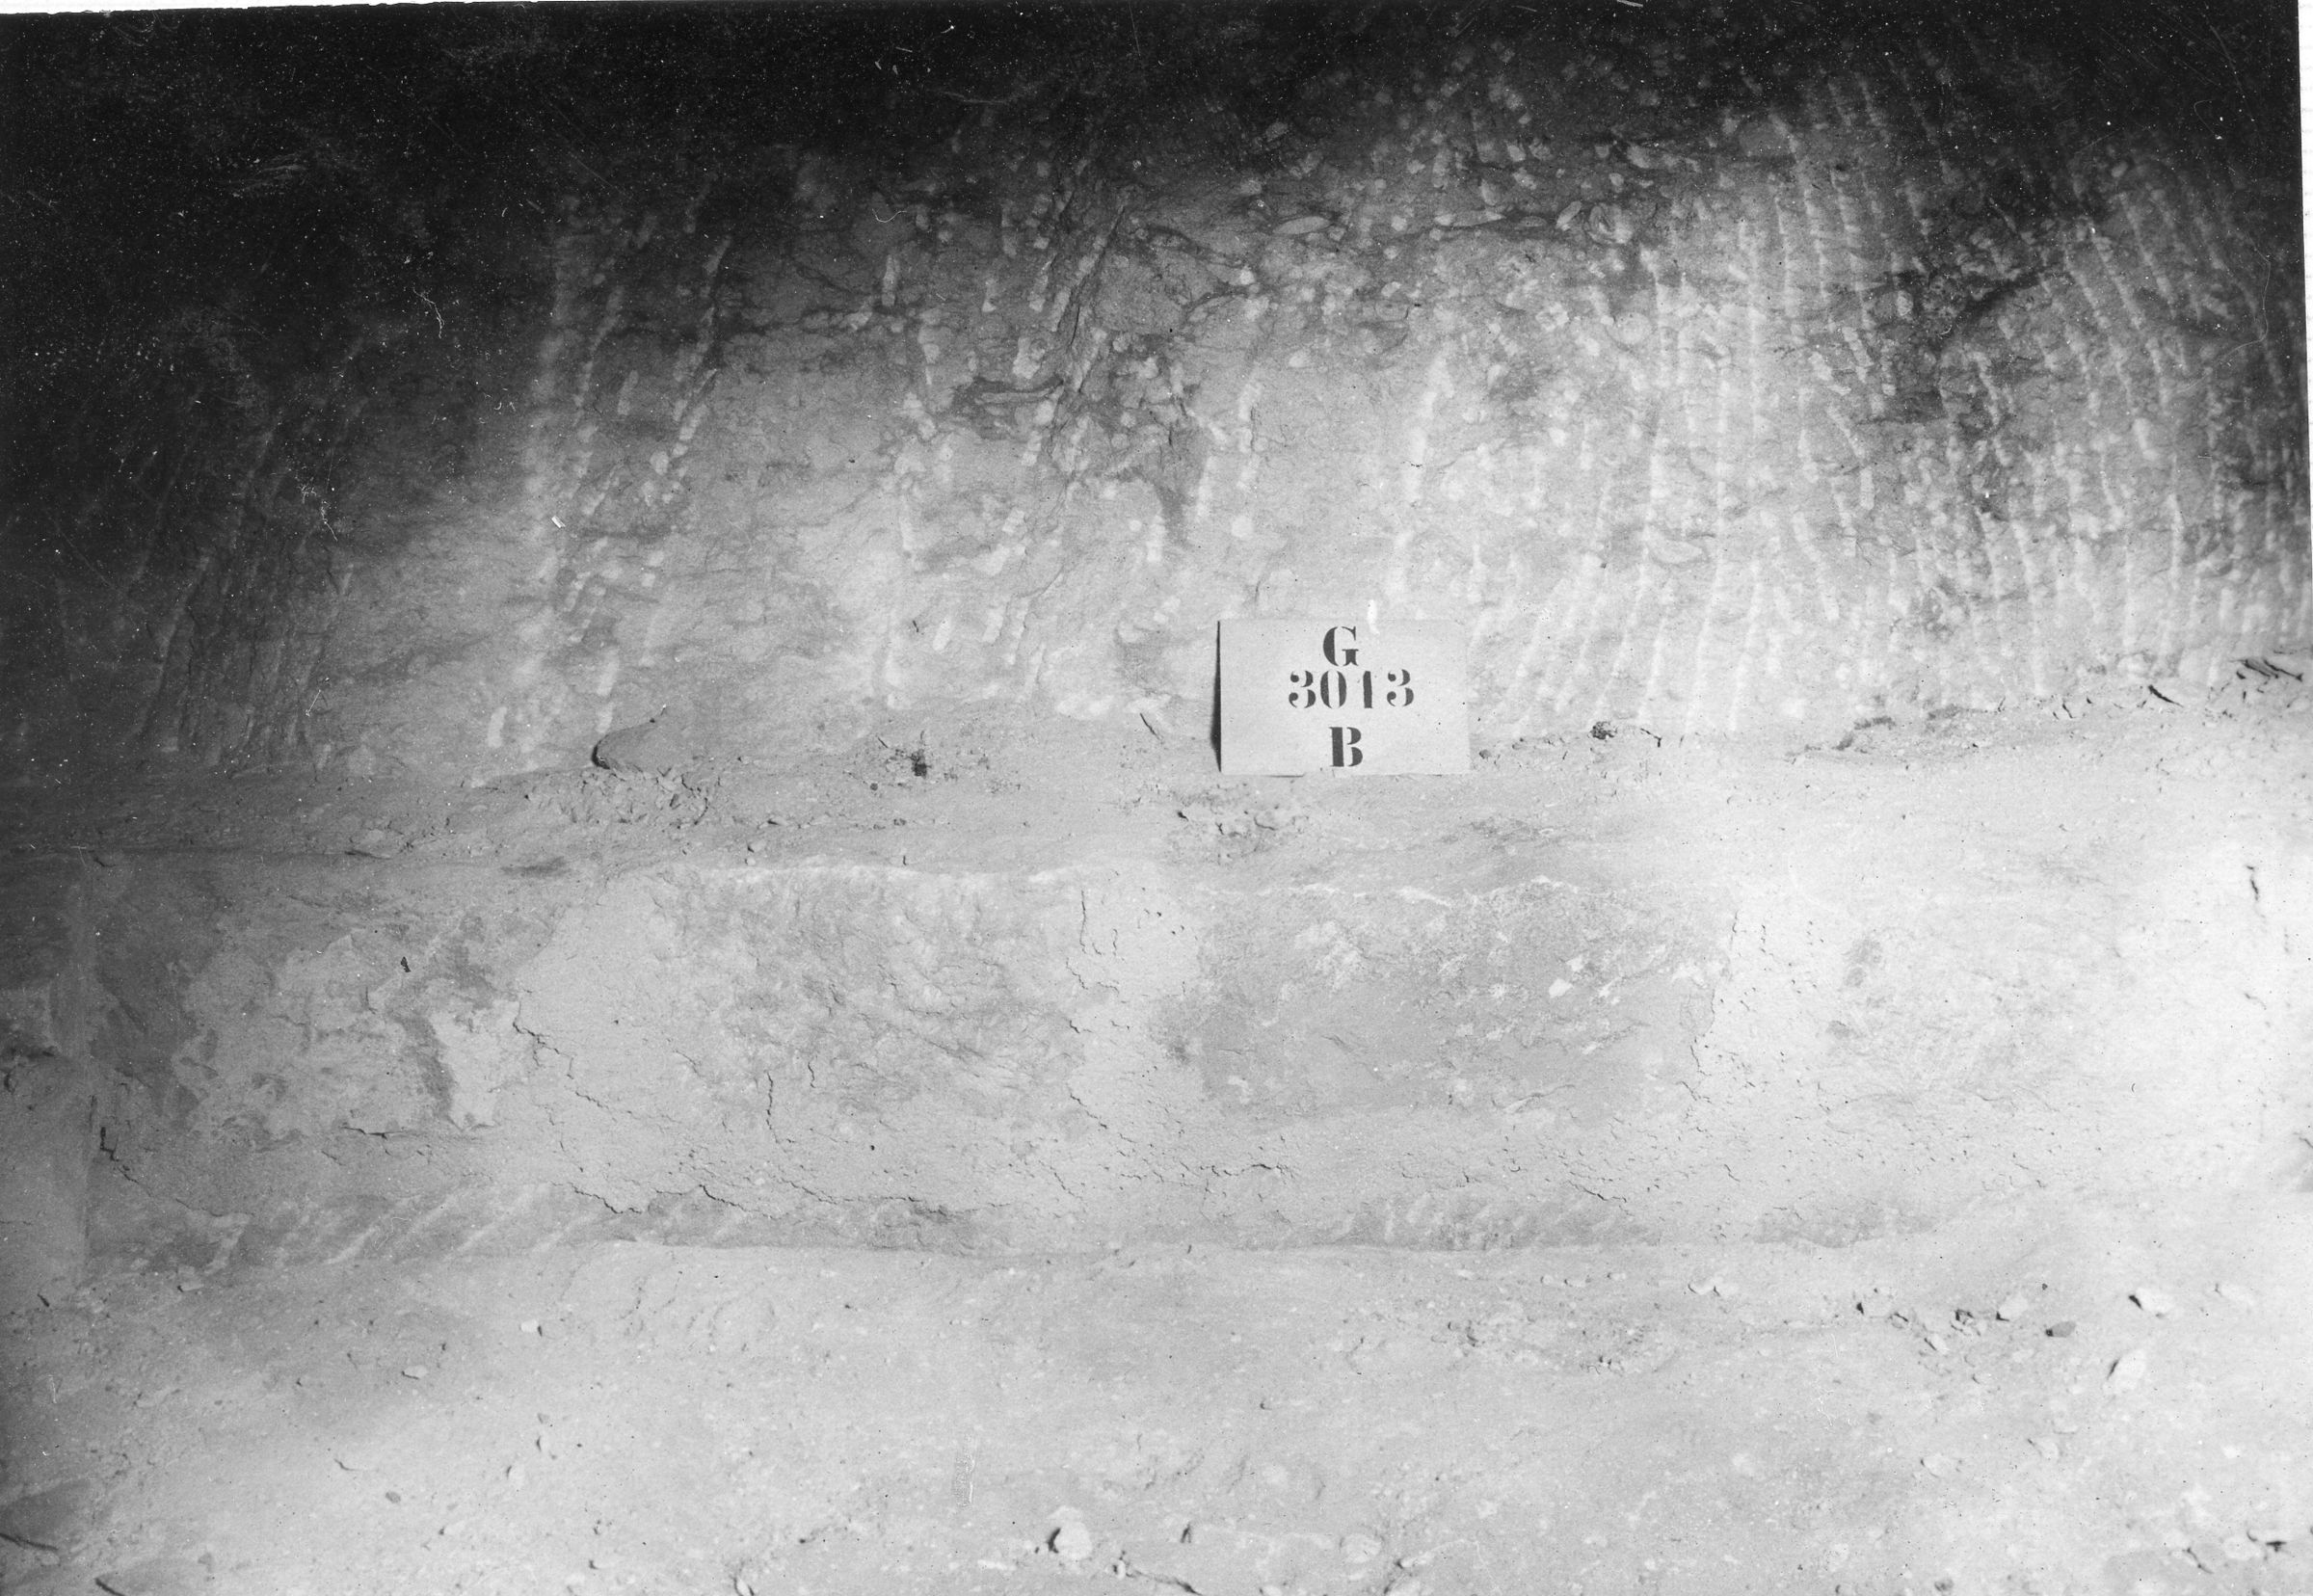 Western Cemetery: Site: Giza; view: G 3013